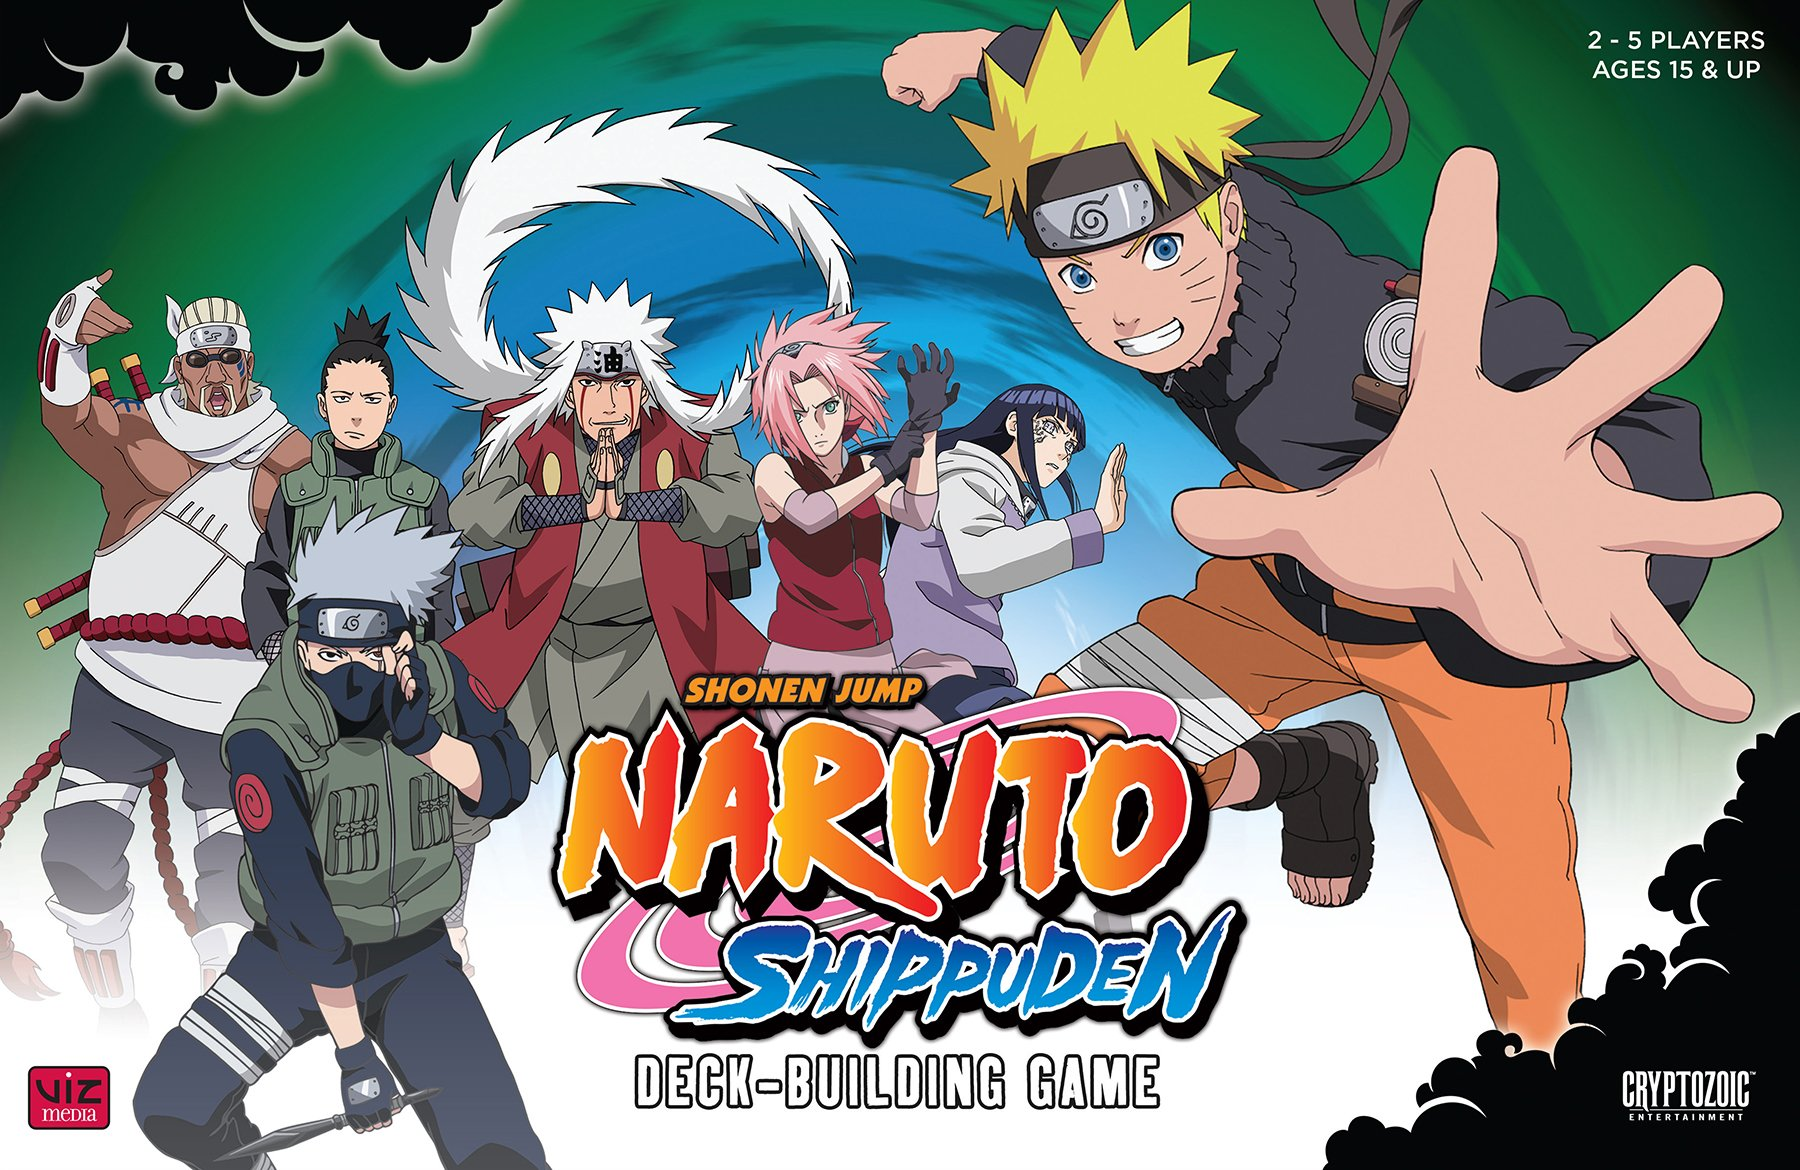 Naruto Shippuden Deck Building Game by Cryptozoic Entertainment